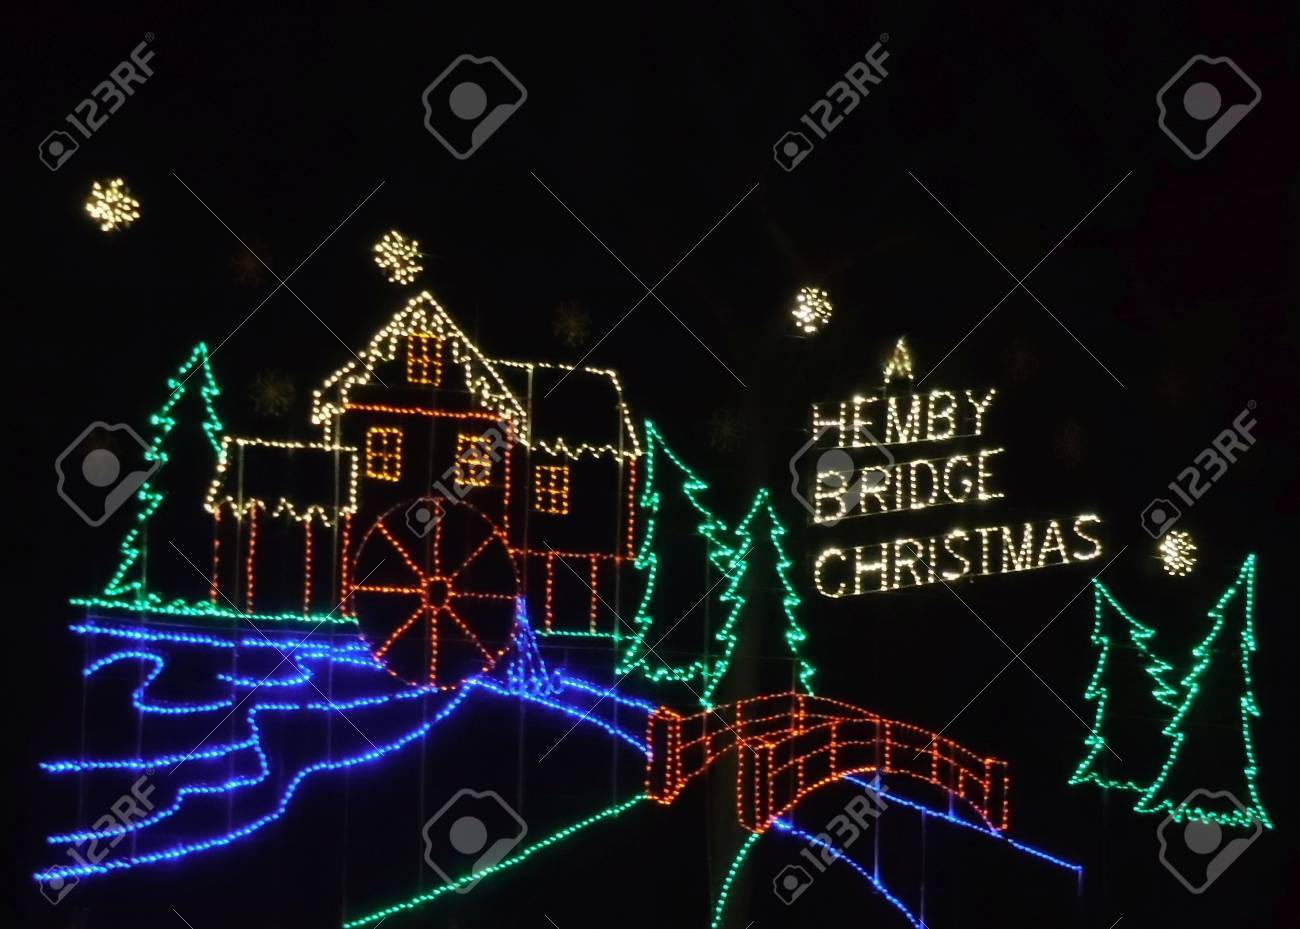 December 25, 2017 - Indian Trail, NC - Christmas lights at Hemby Bridge Stock Photo - 78727535